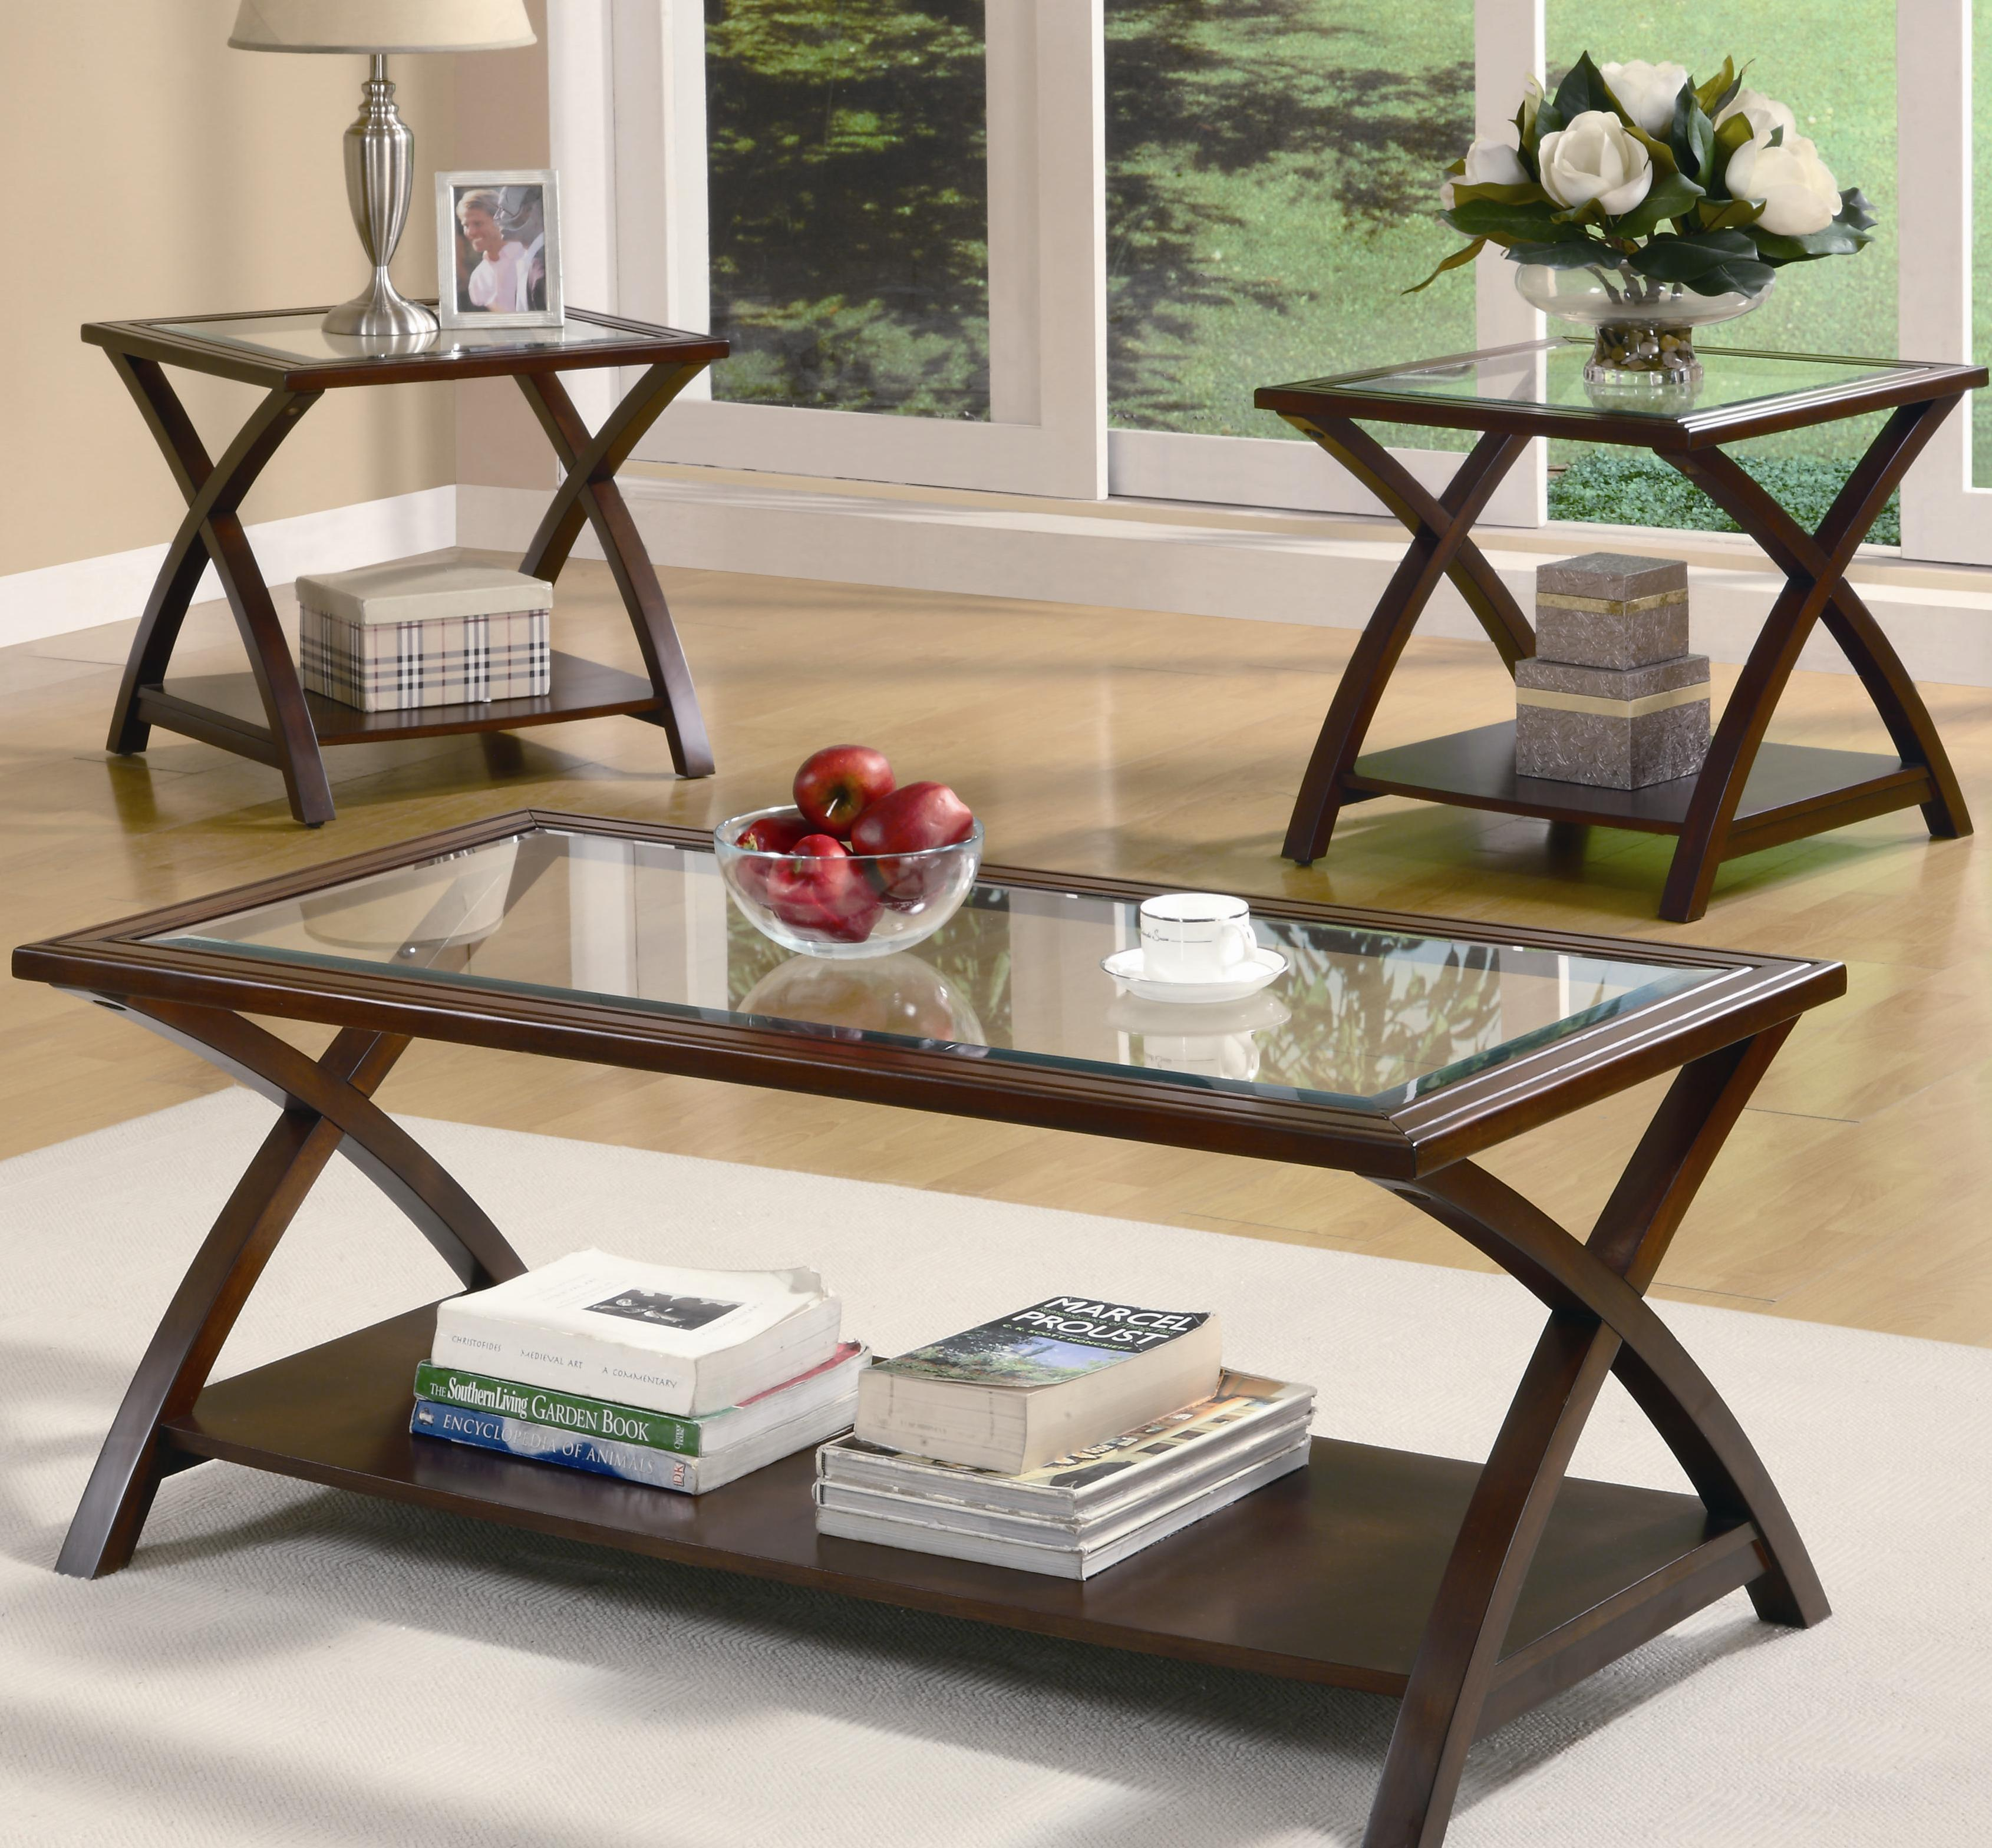 Cheap Coffee Tables And End Tables Glendale Ca A Star Furniture in 15 Clever Tricks of How to Makeover Three Piece Living Room Table Set